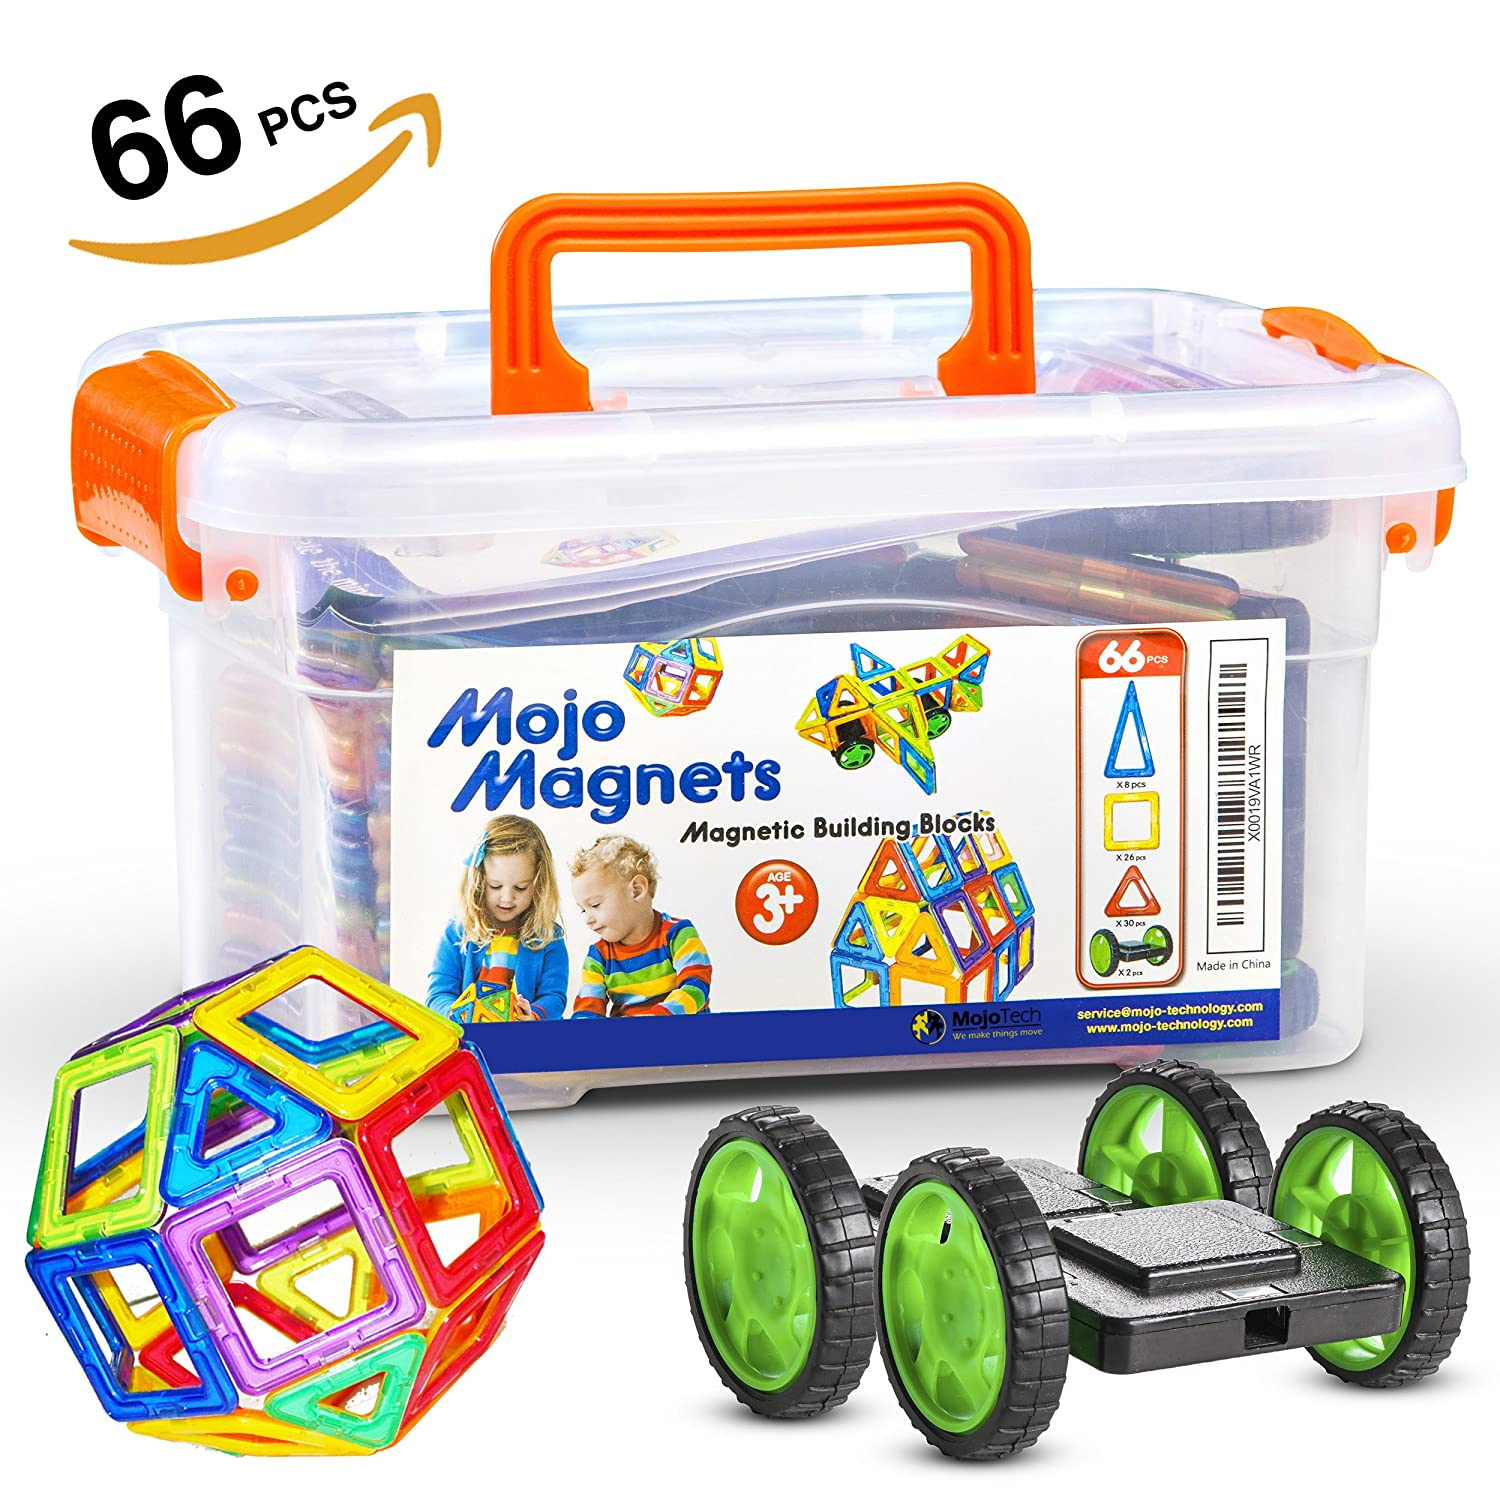 MOJO MAGS - Magnetic Blocks for kids 66 PCS - Magnetic Tiles / Building Toys or Toddlers - Packed in a Plastic Box - Includes Booklet and Pair of Wheels Review